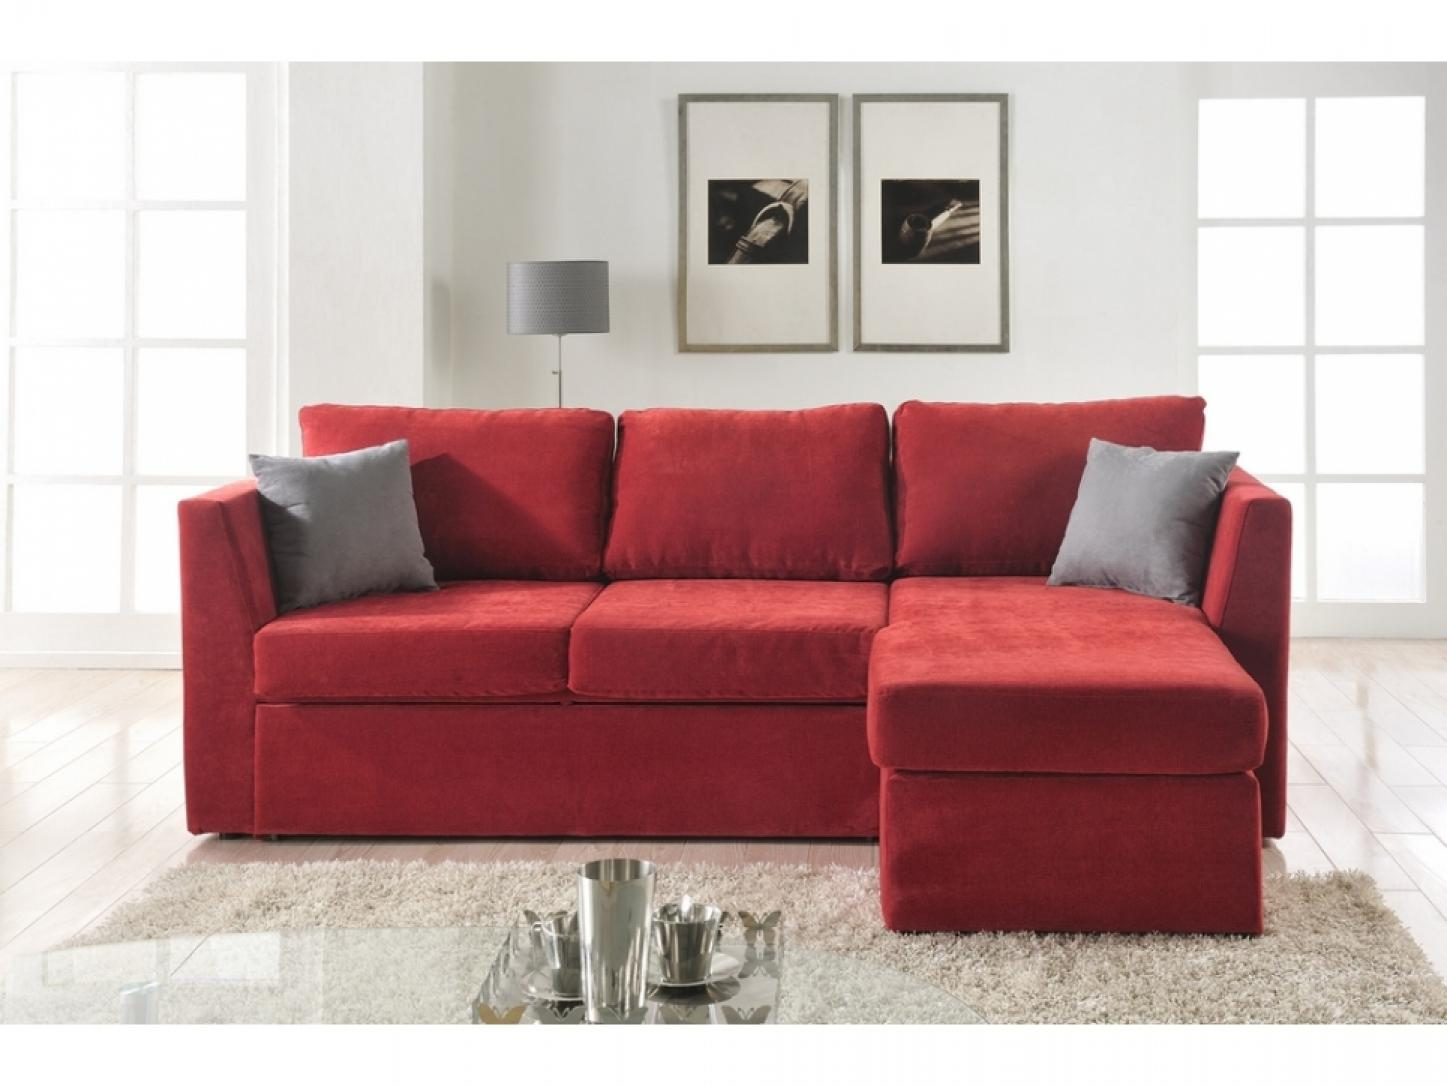 Photos canap d 39 angle convertible tissu rouge - Canape rouge convertible ...